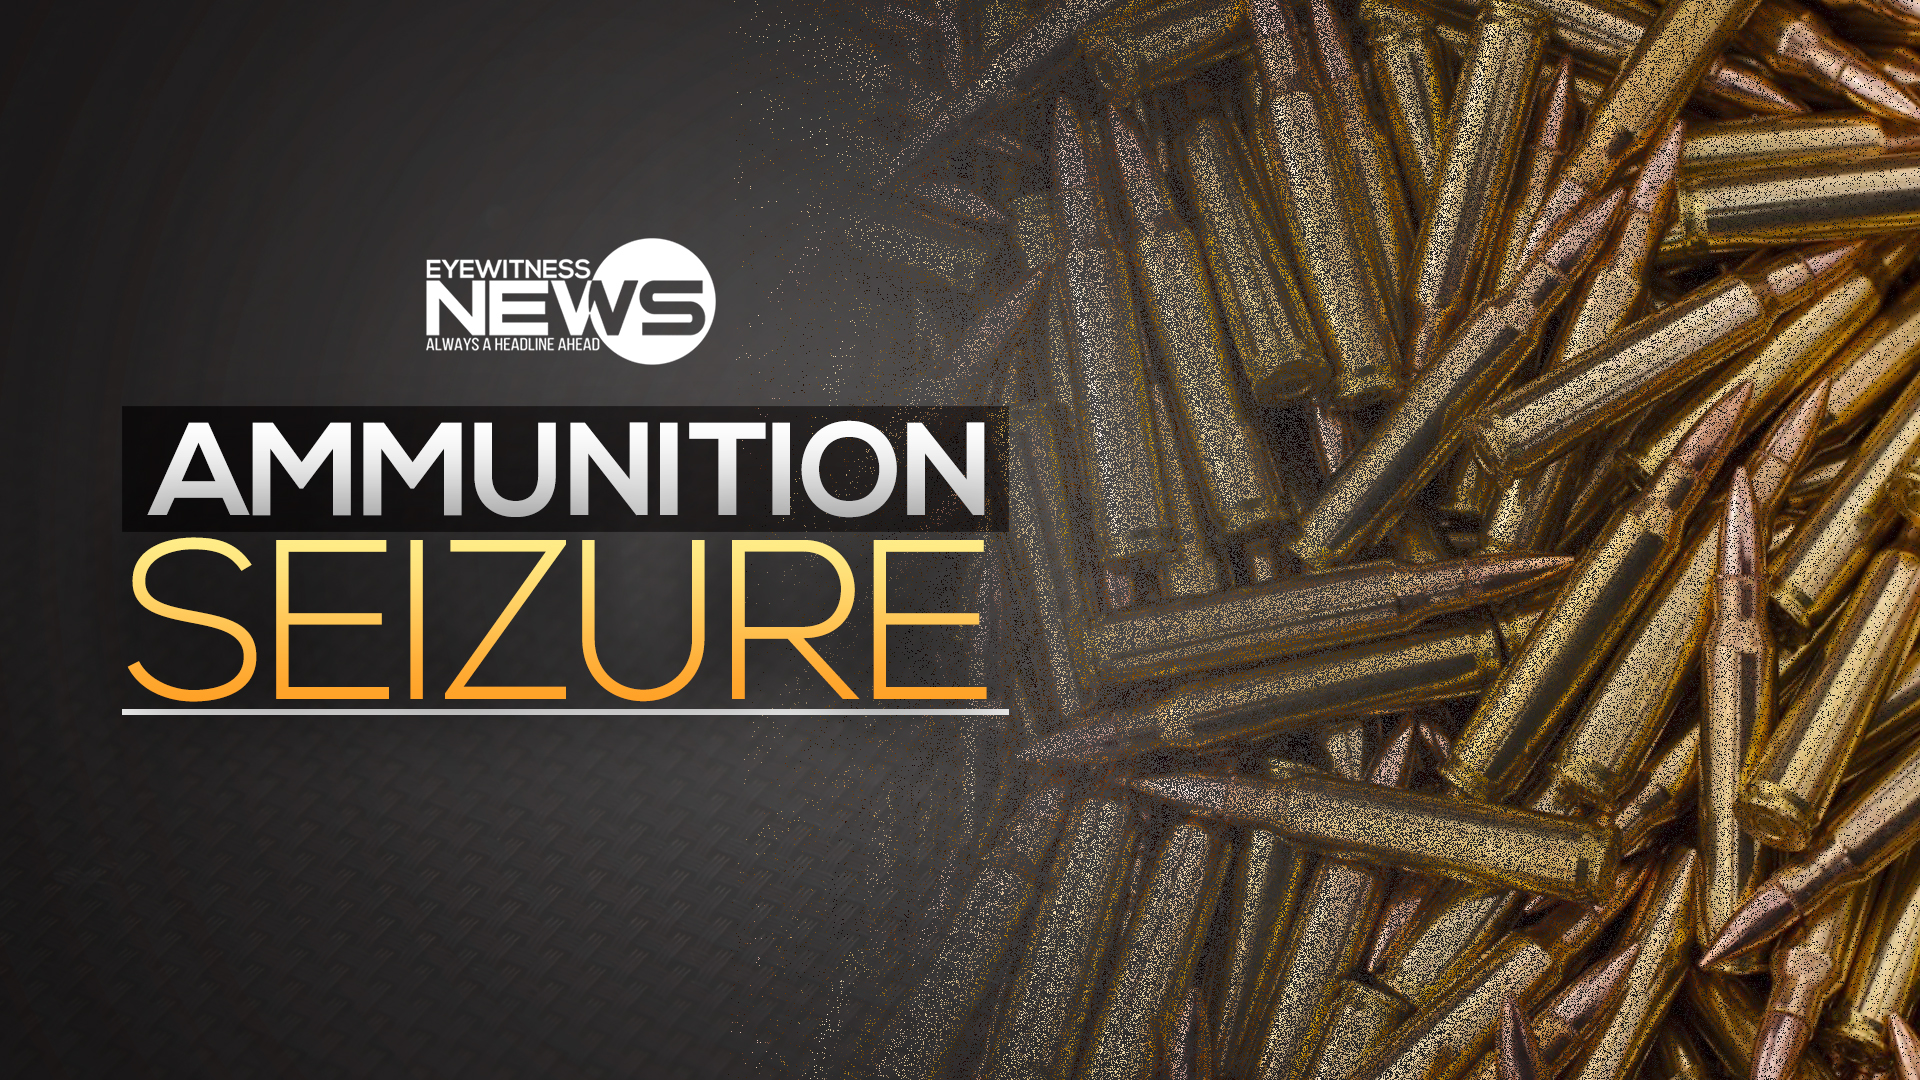 Illegal ammunition seized, adult male in custody